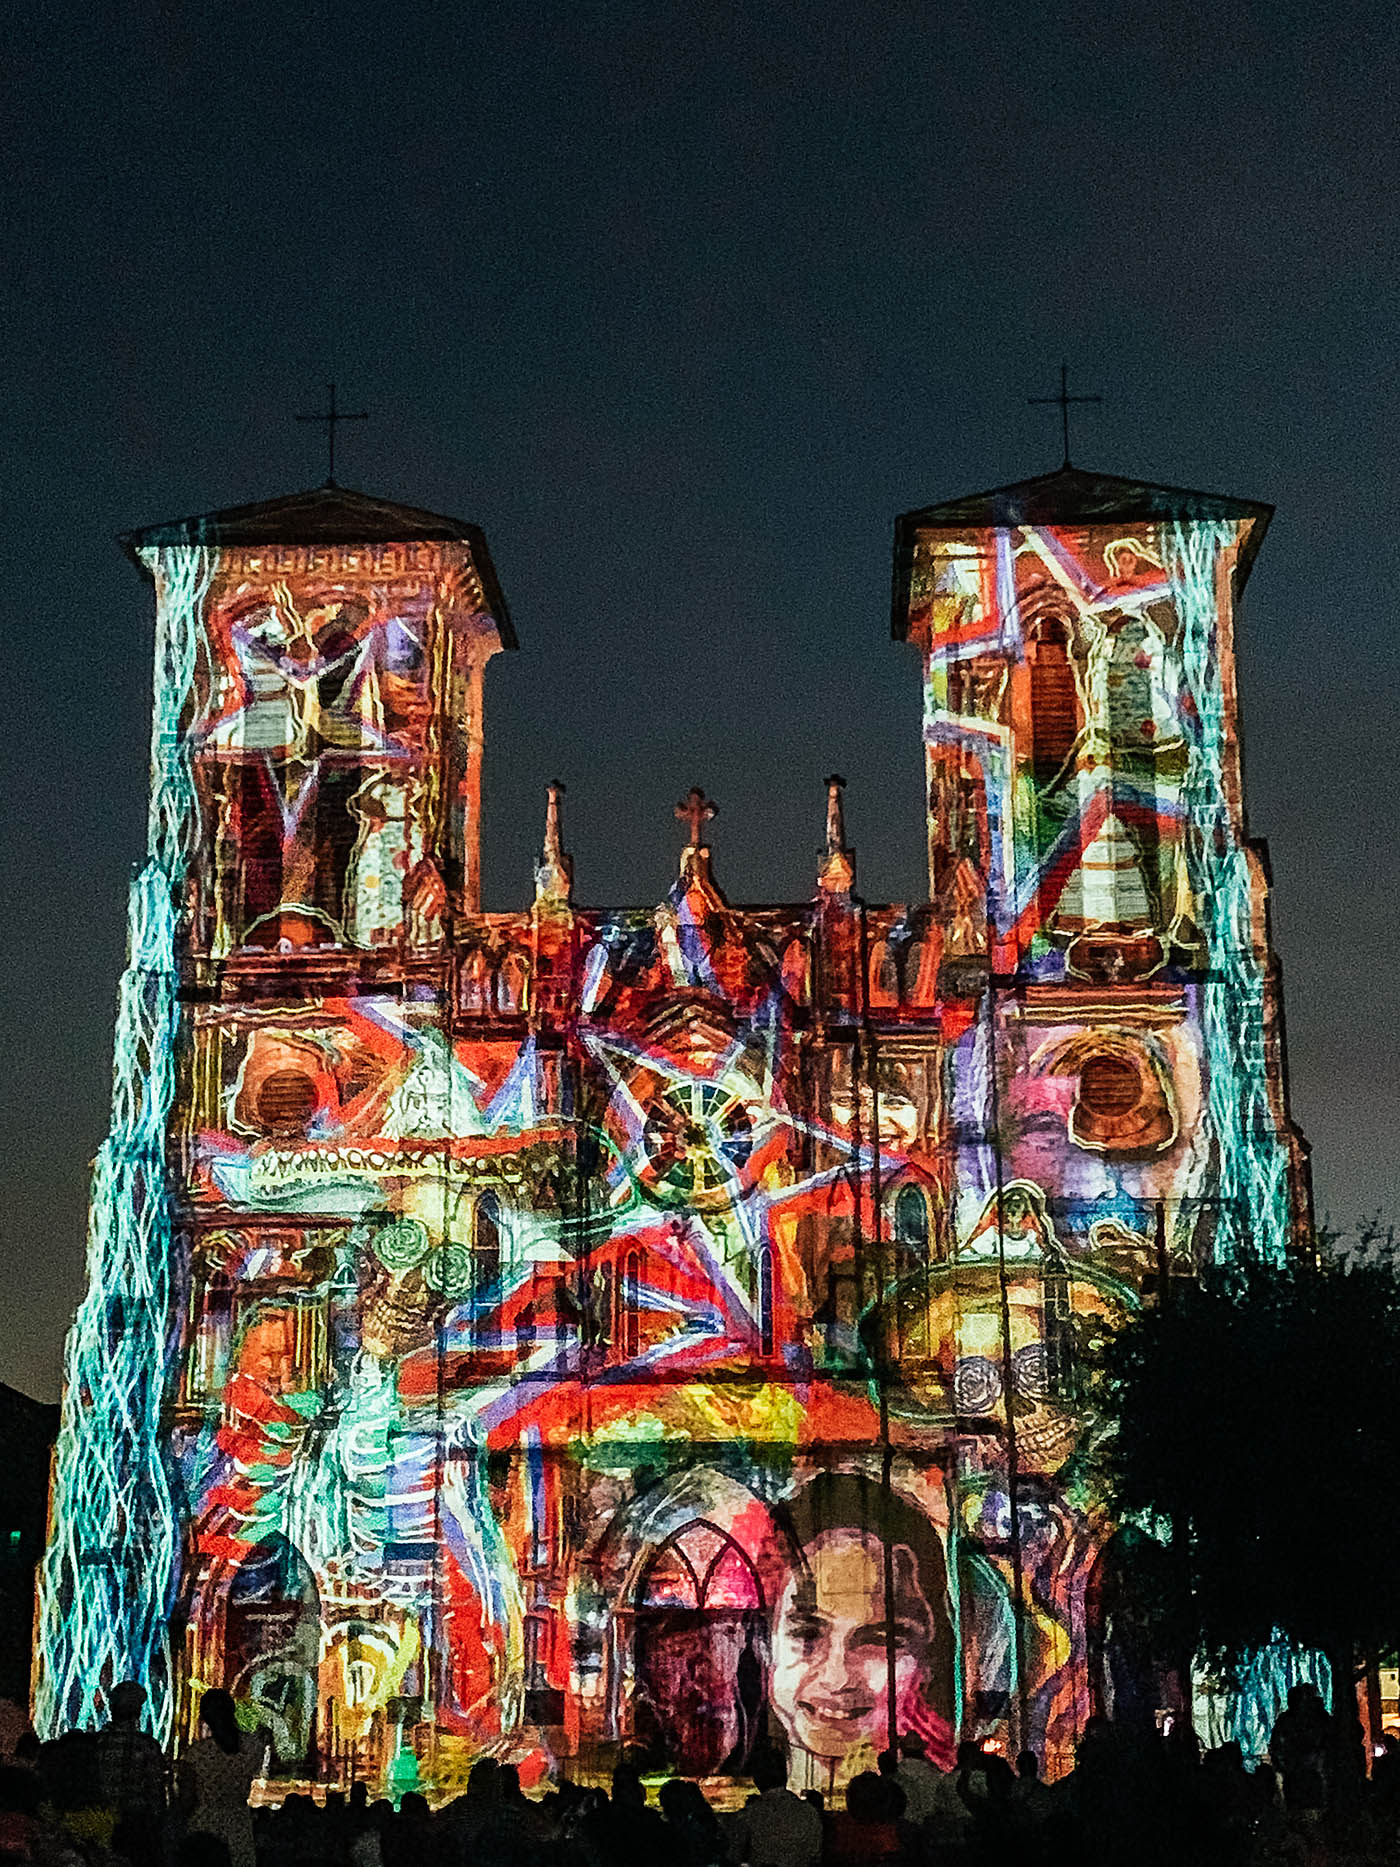 Lights on a cathedral at night in San Antonio